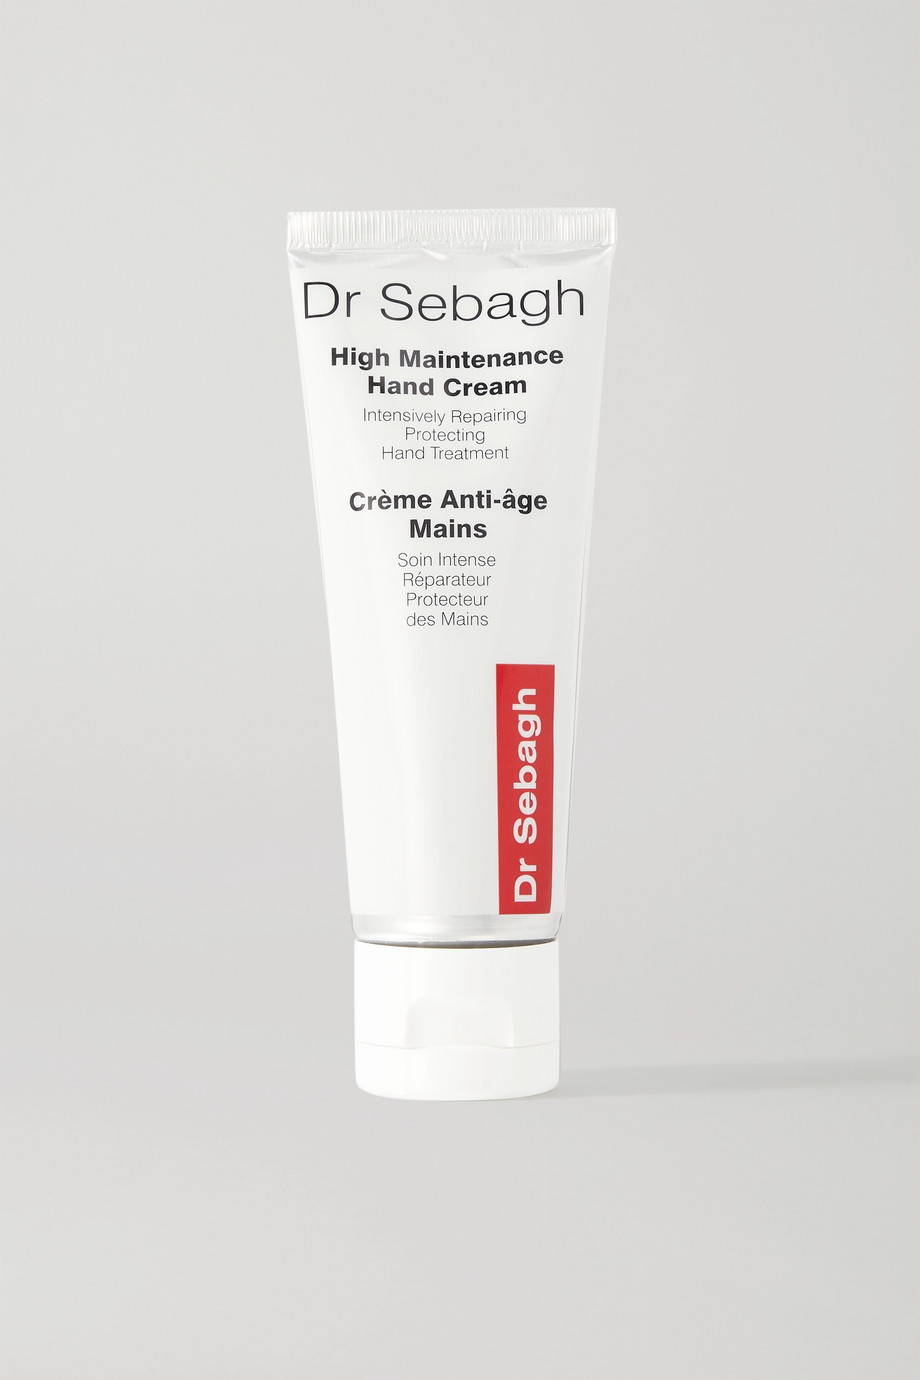 Dr Sebagh High Maintenance Hand Cream, 75 ml – Handcreme